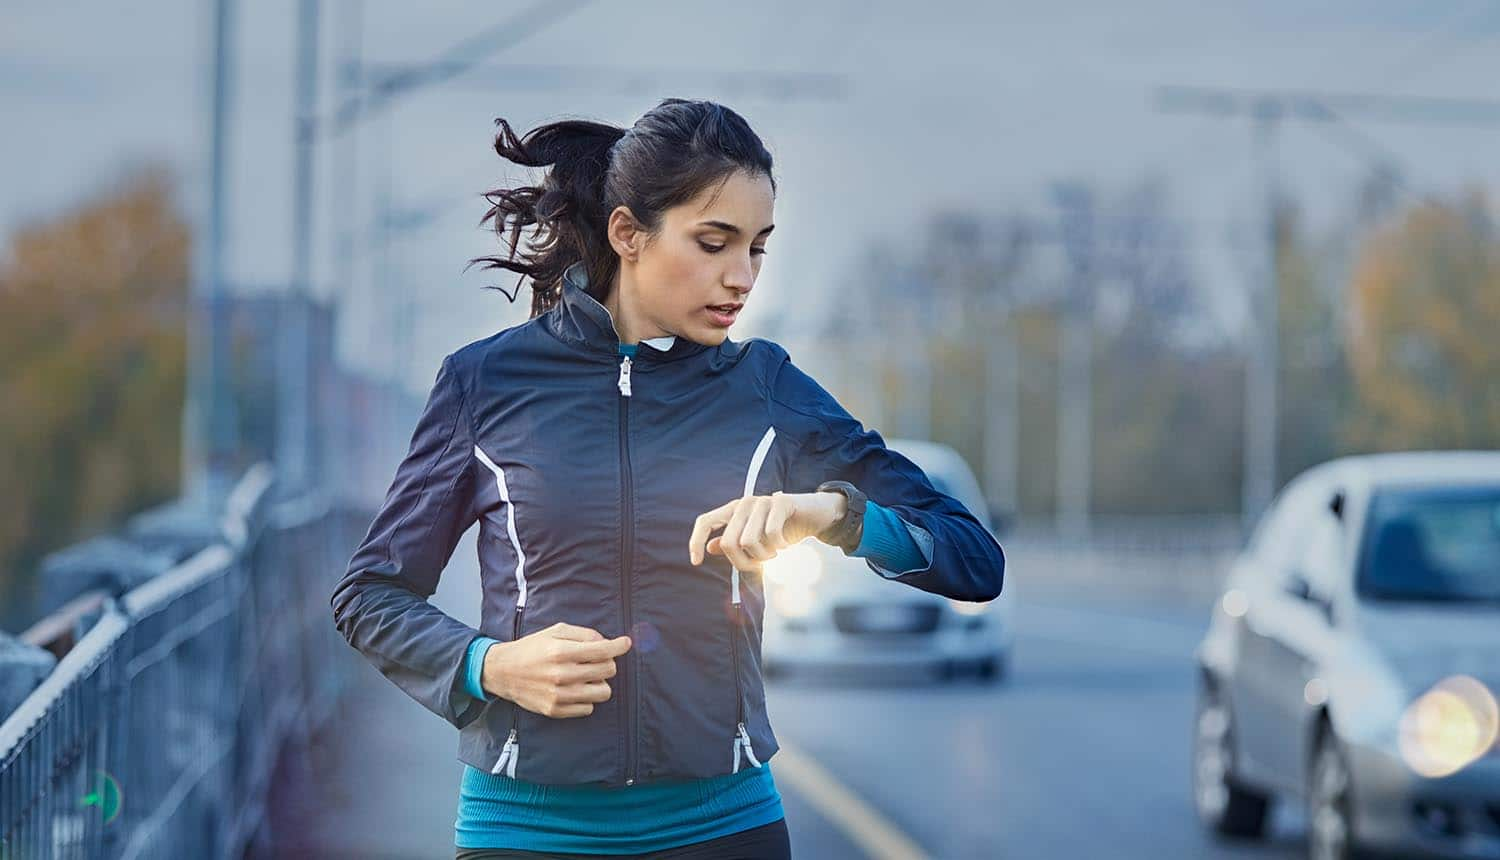 Woman jogger looking at smart watch showing the concerns over Google's access to health data through the proposed acquisition of Fitbit